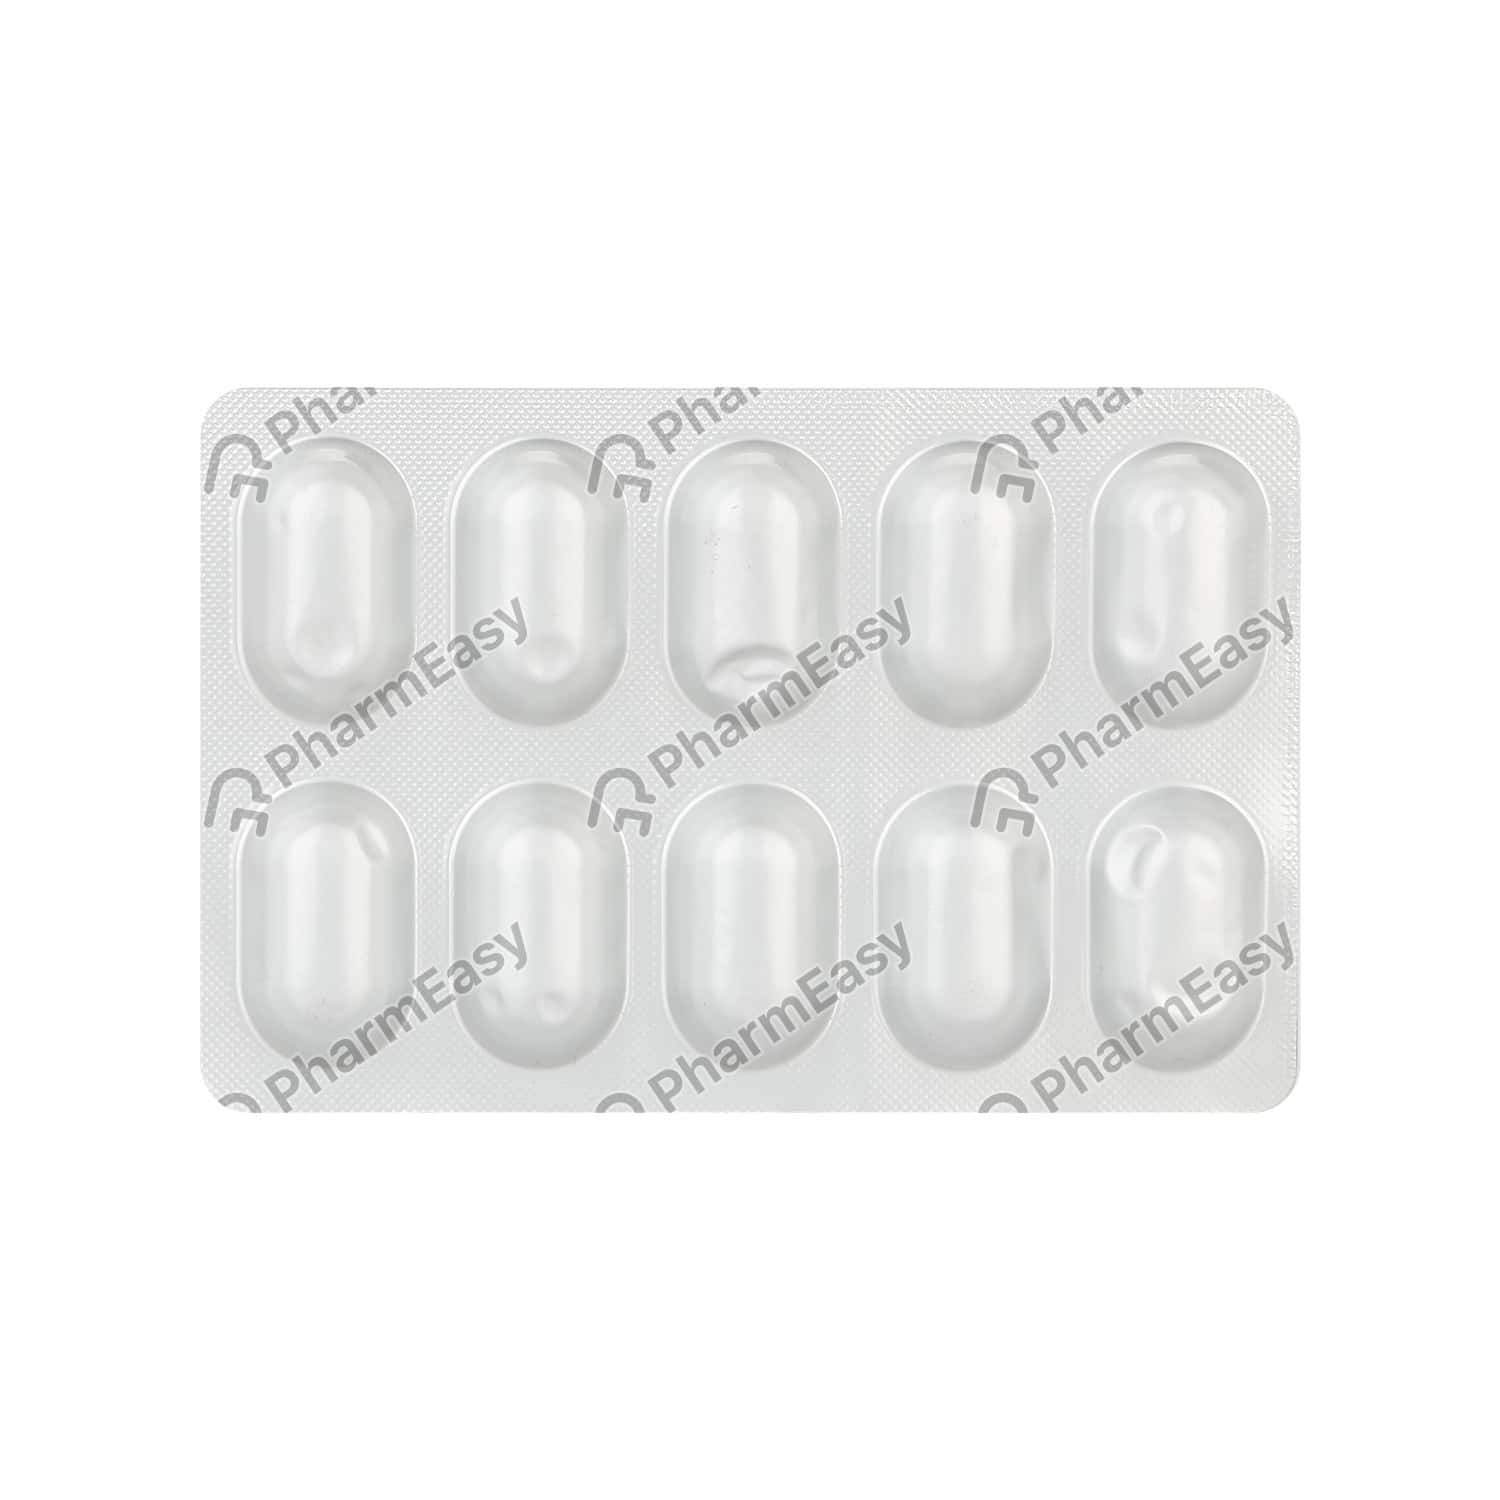 Gudcef Cv 200mg Strip Of 10 Tablets